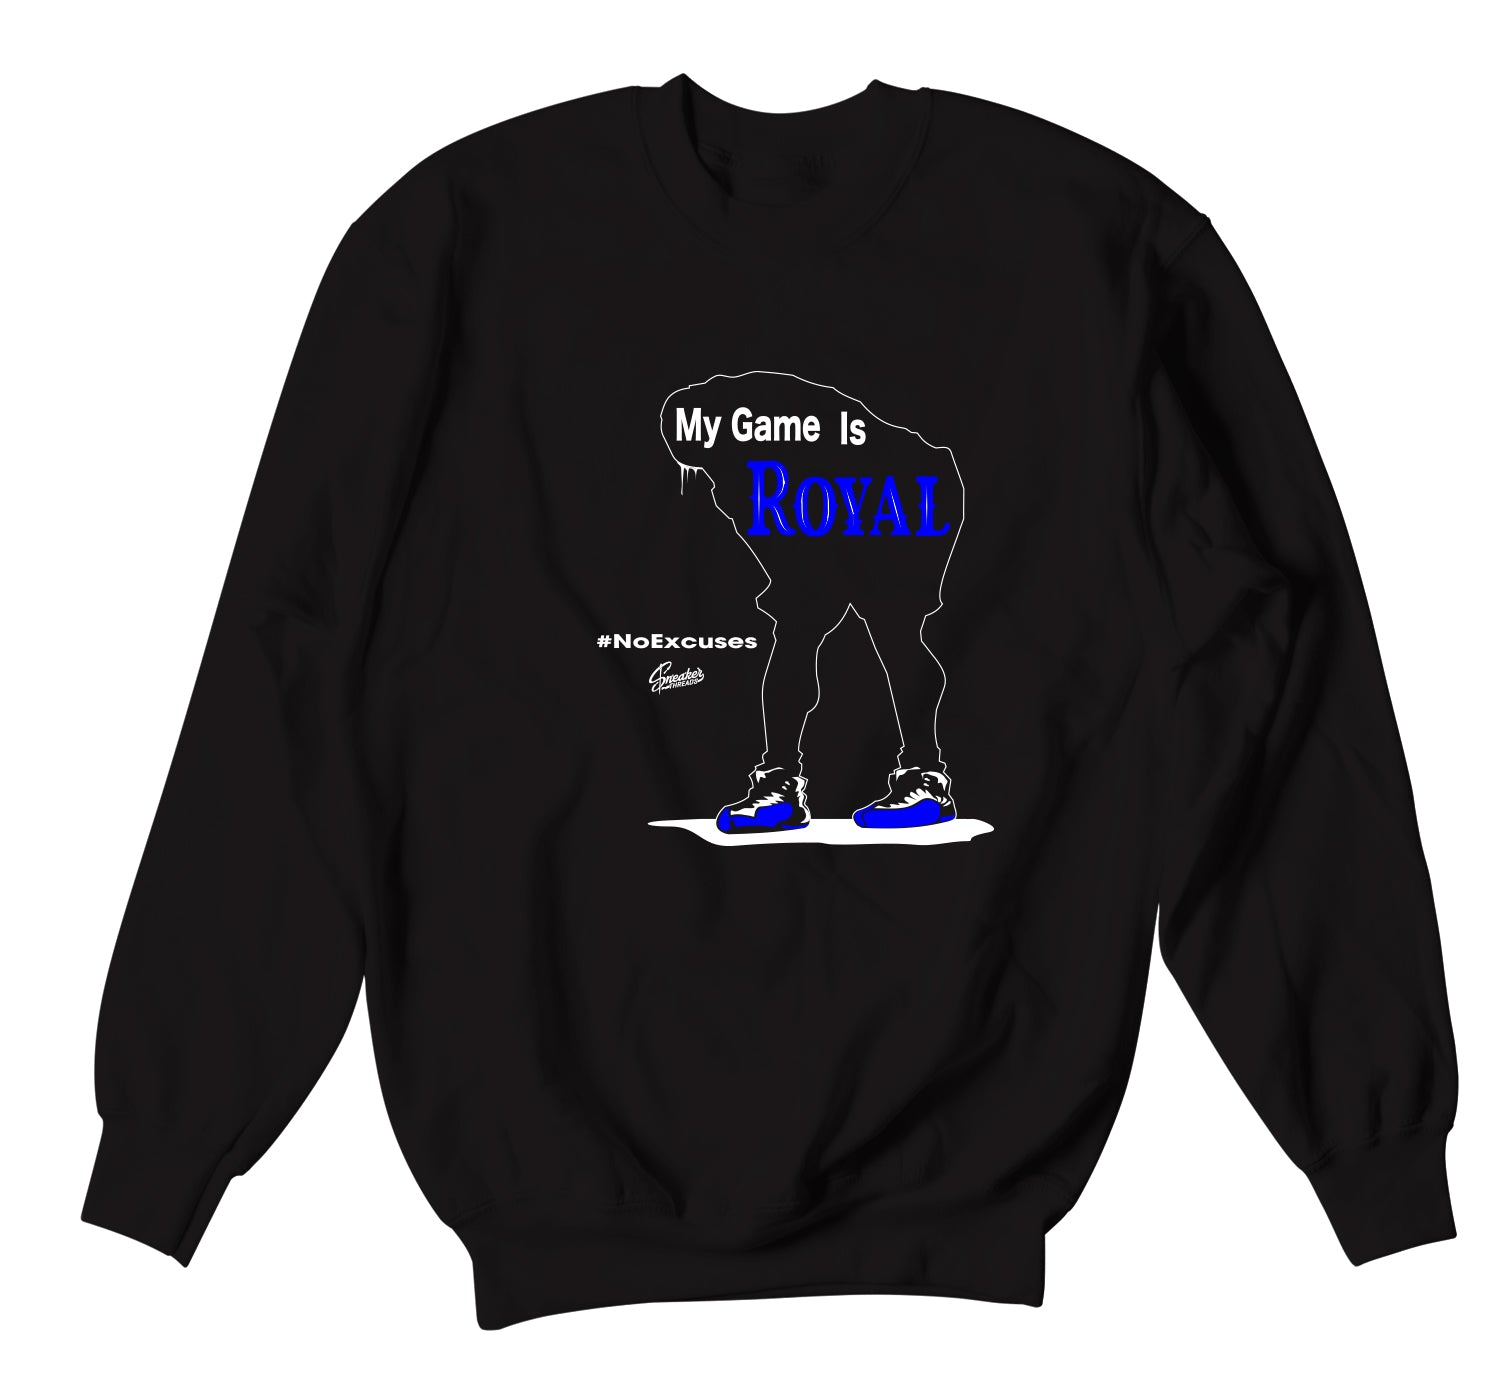 Jordan 12 game royal sneaker matching mens sweater